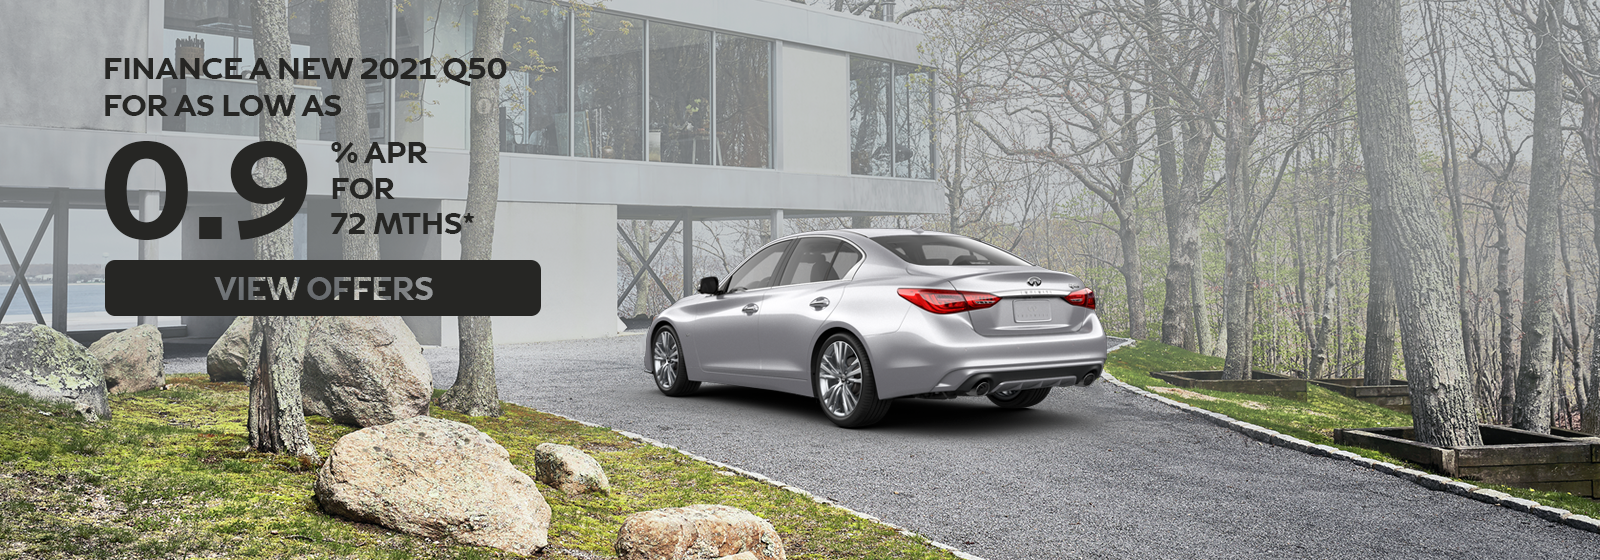 0.9% APR for up to 72 months on 2021 Q50